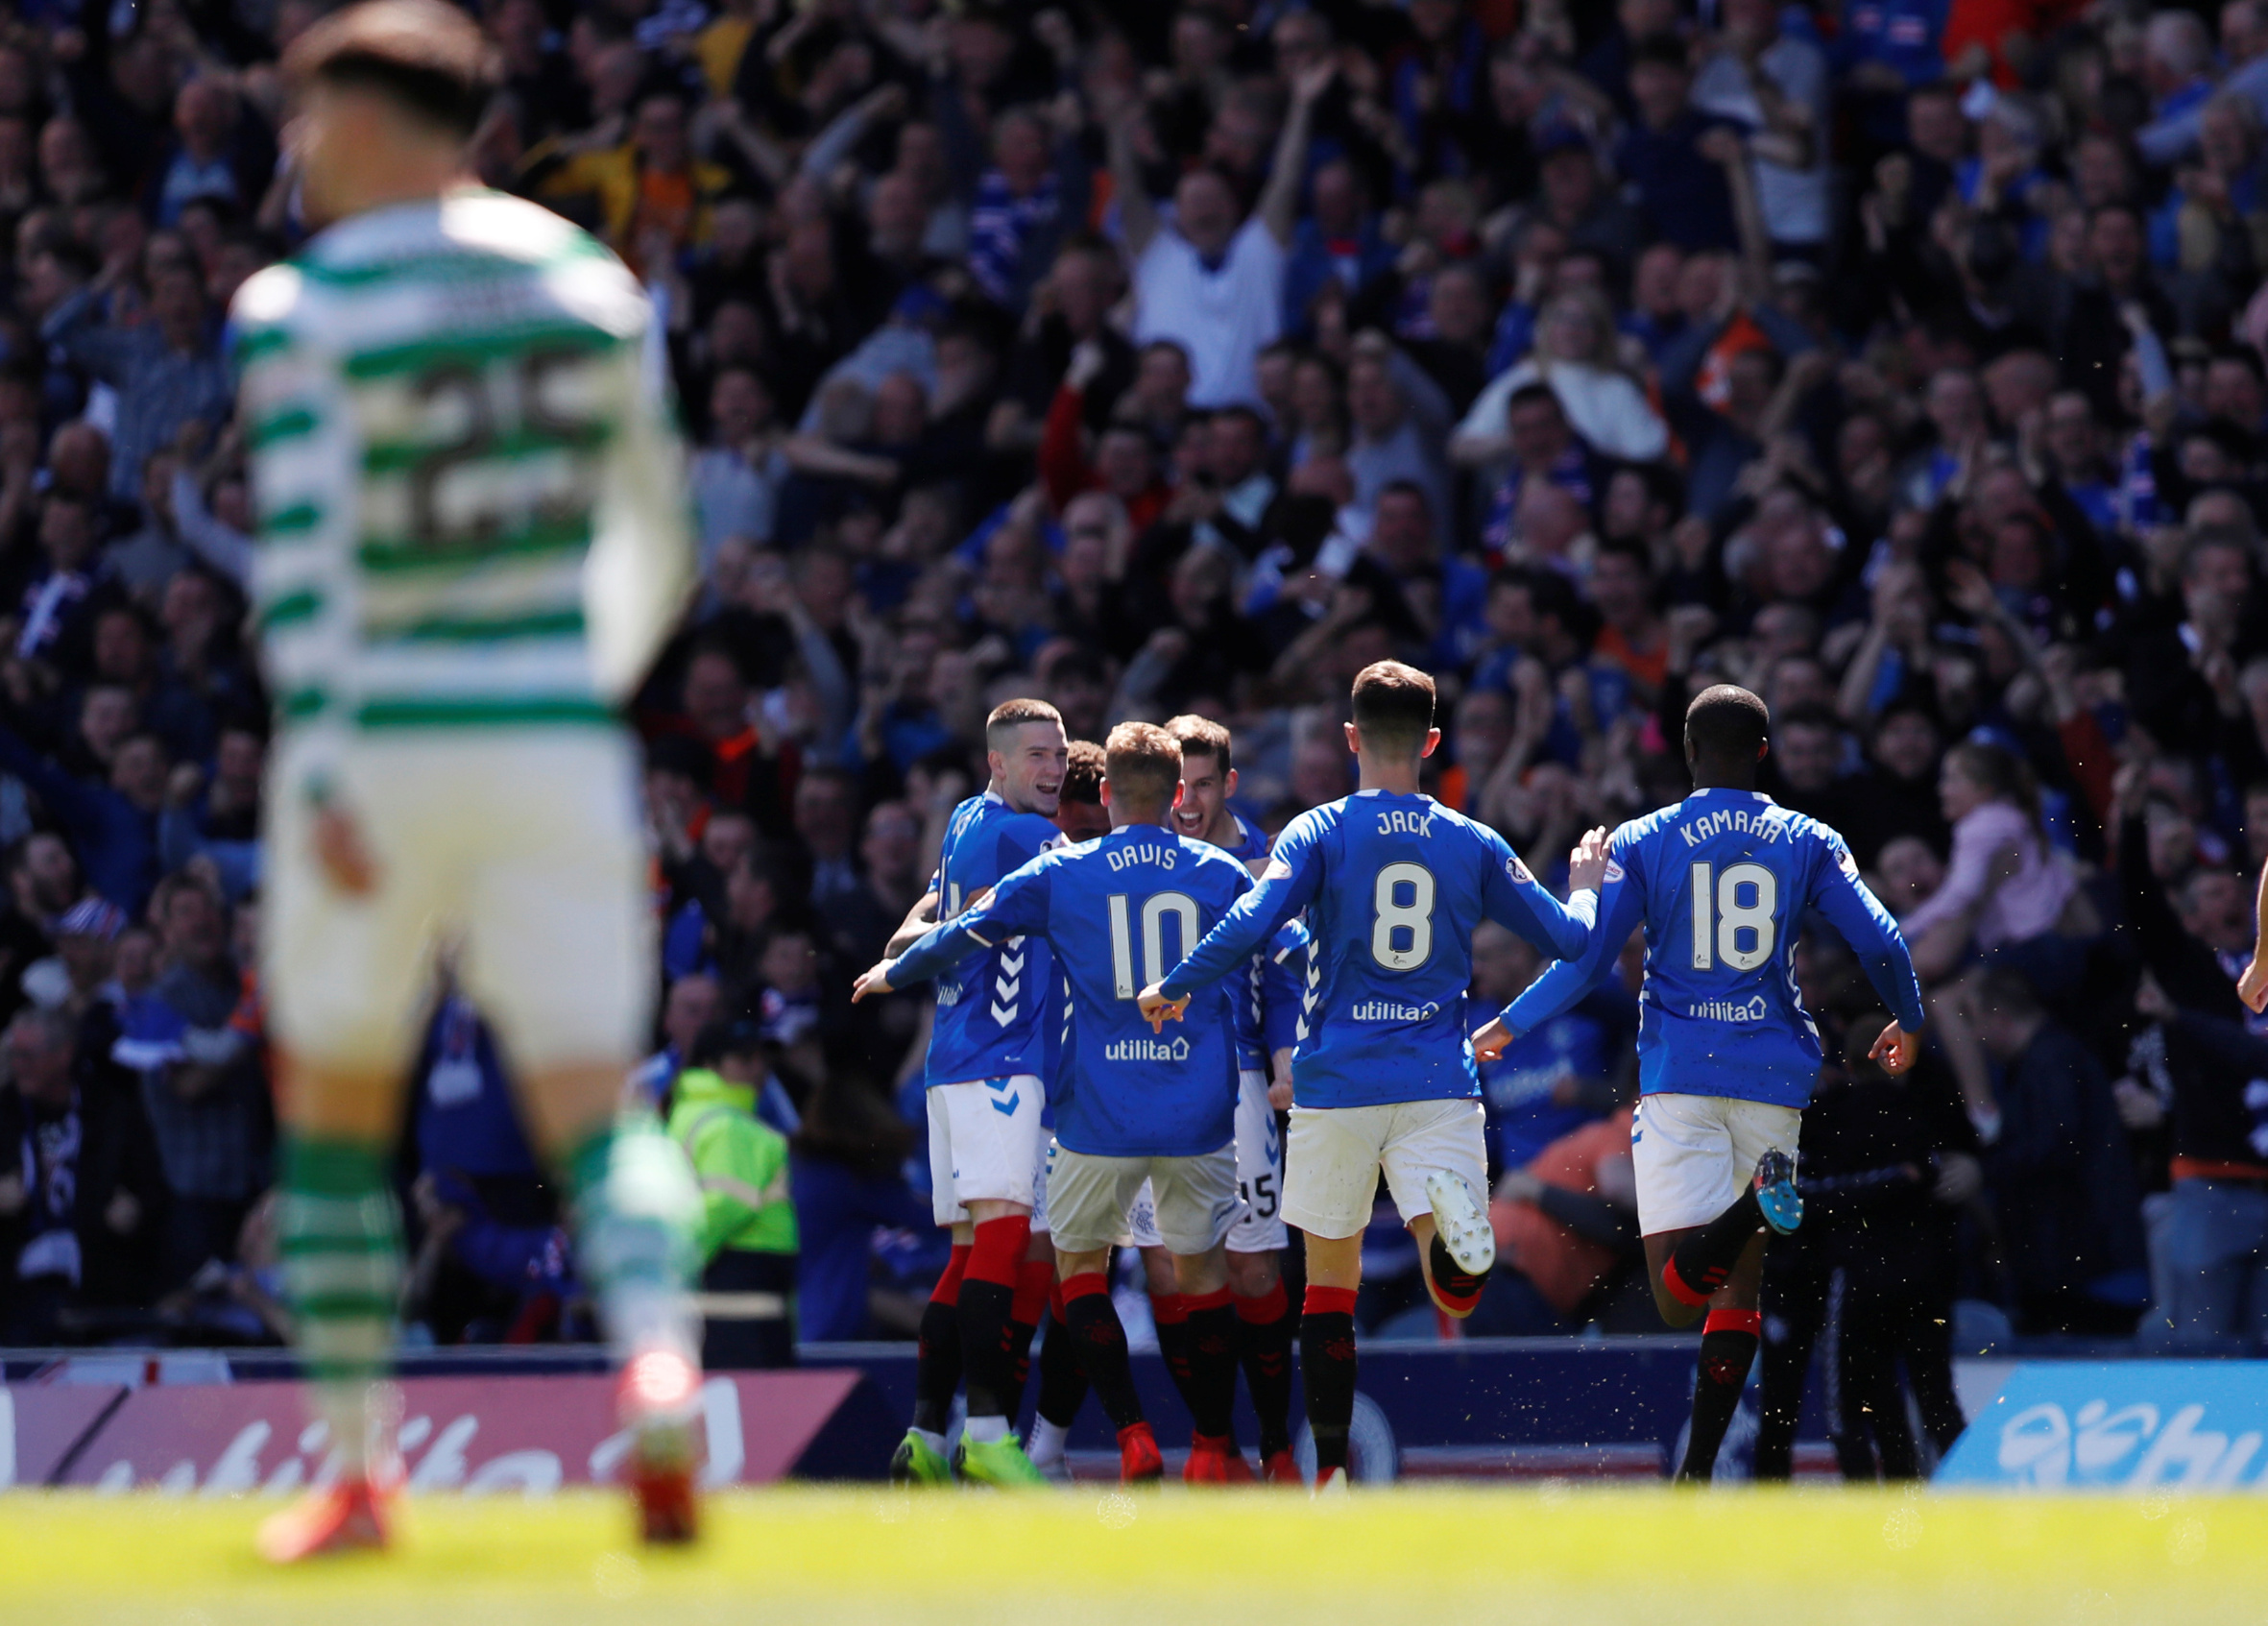 Soccer Football - Premiership - Rangers v Celtic - Ibrox, Glasgow, Britain - May 12, 2019   Rangers' James Tavernier celebrates with team mates after scoring their first goal    REUTERS/Russell Cheyne - RC1228364690